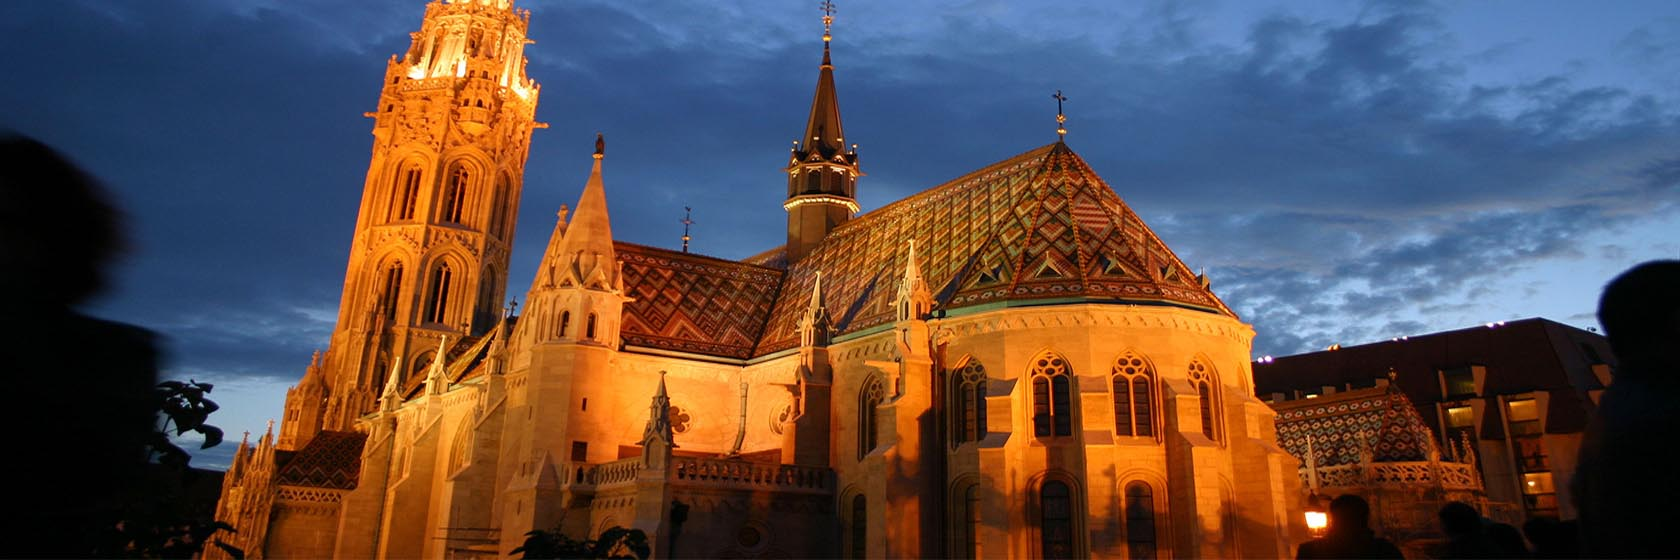 a-tale-of-three-cities-9-days-with-a-and-k-cathedral